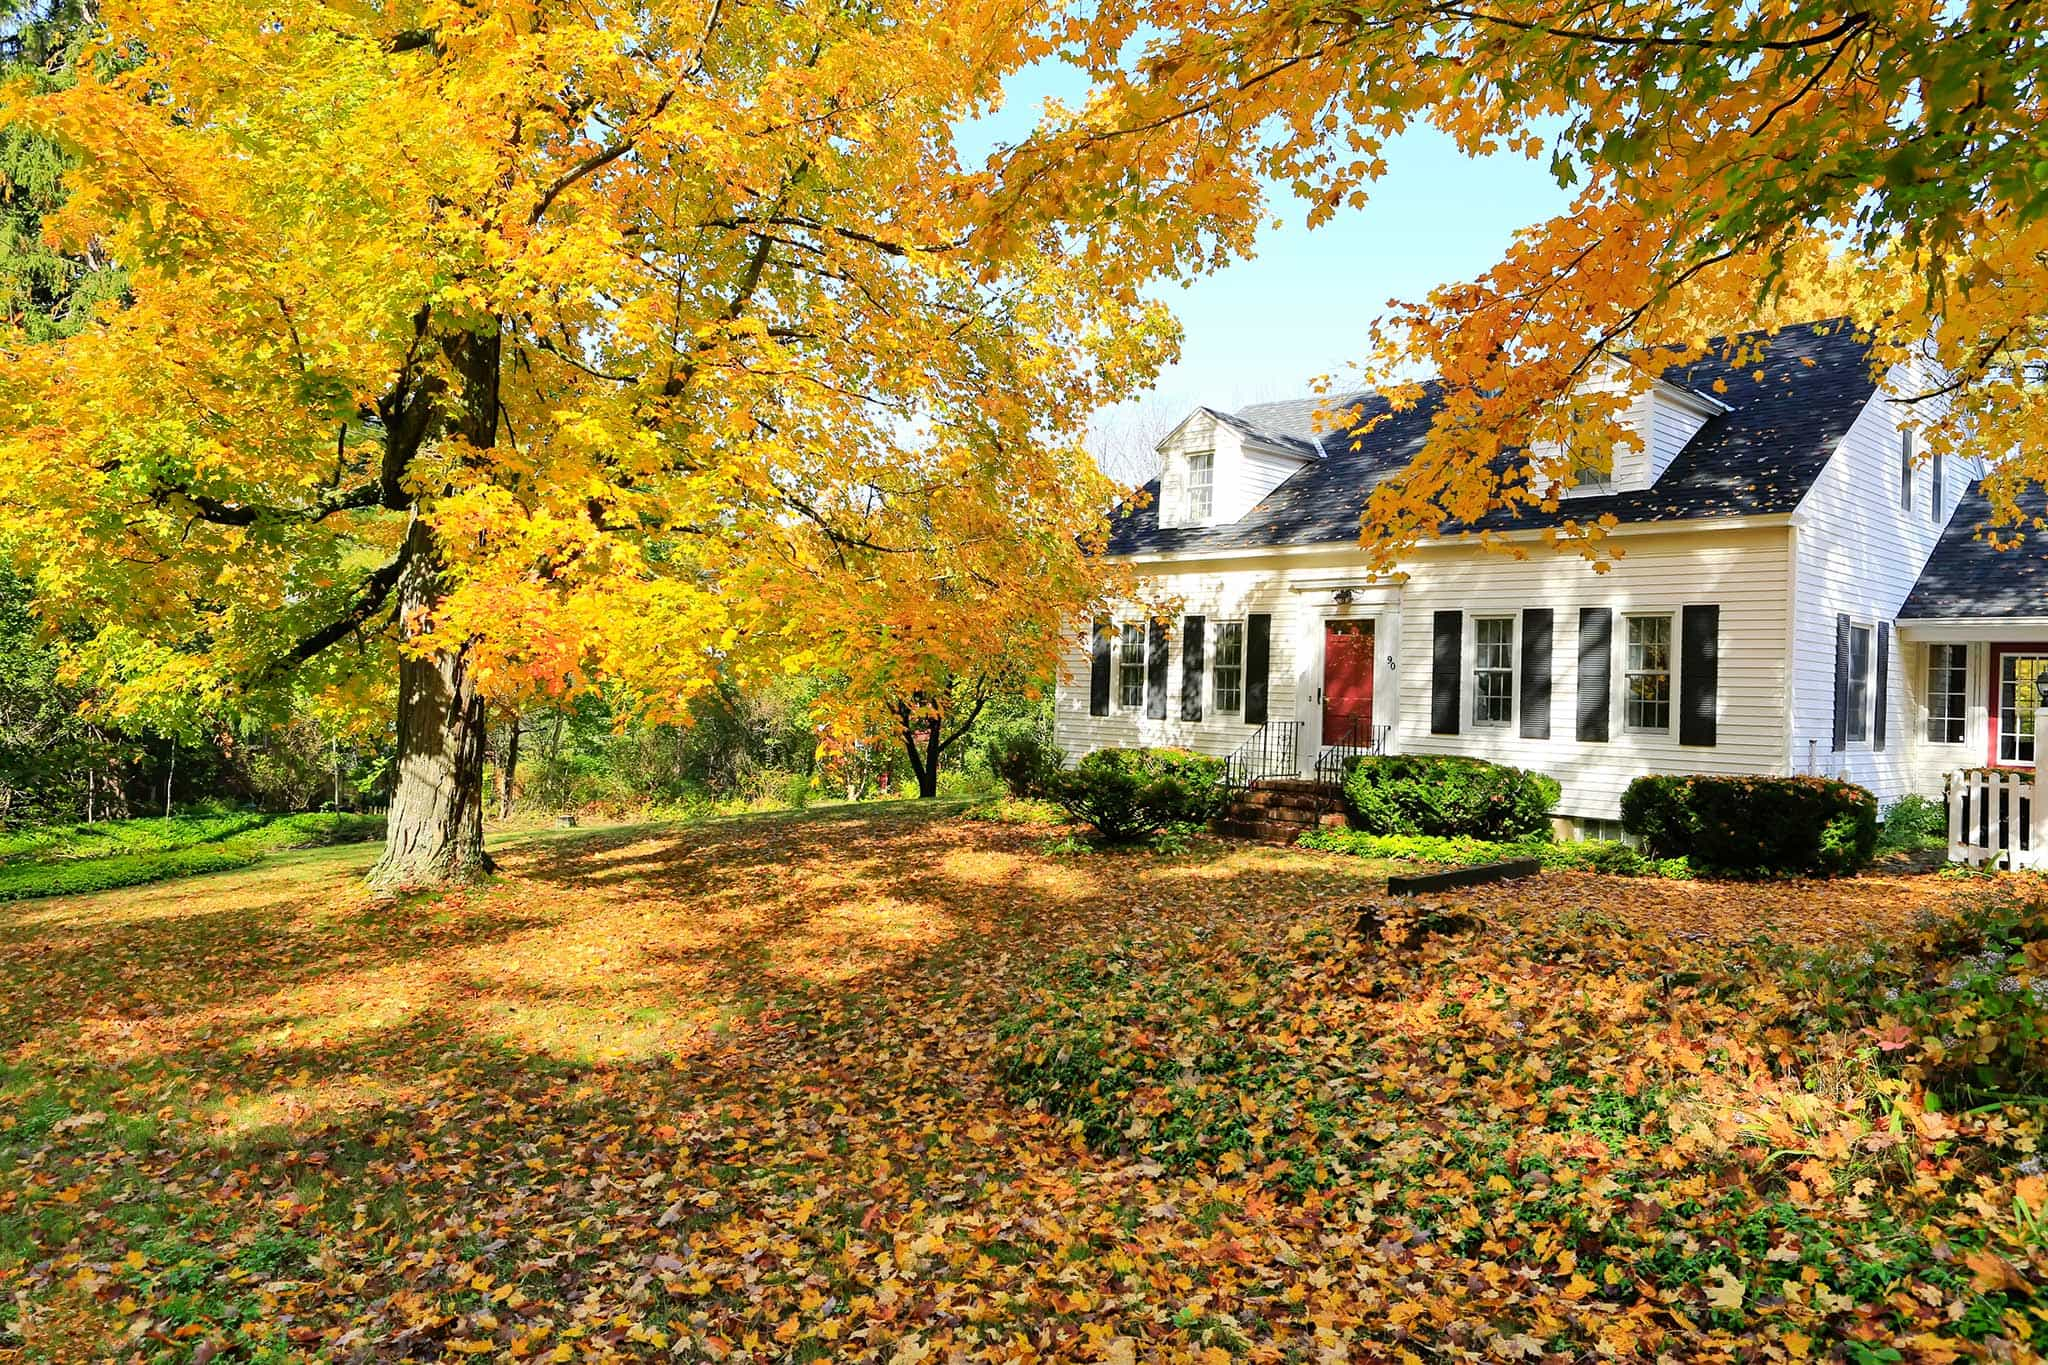 Autumn Leaves Falling in Front of House